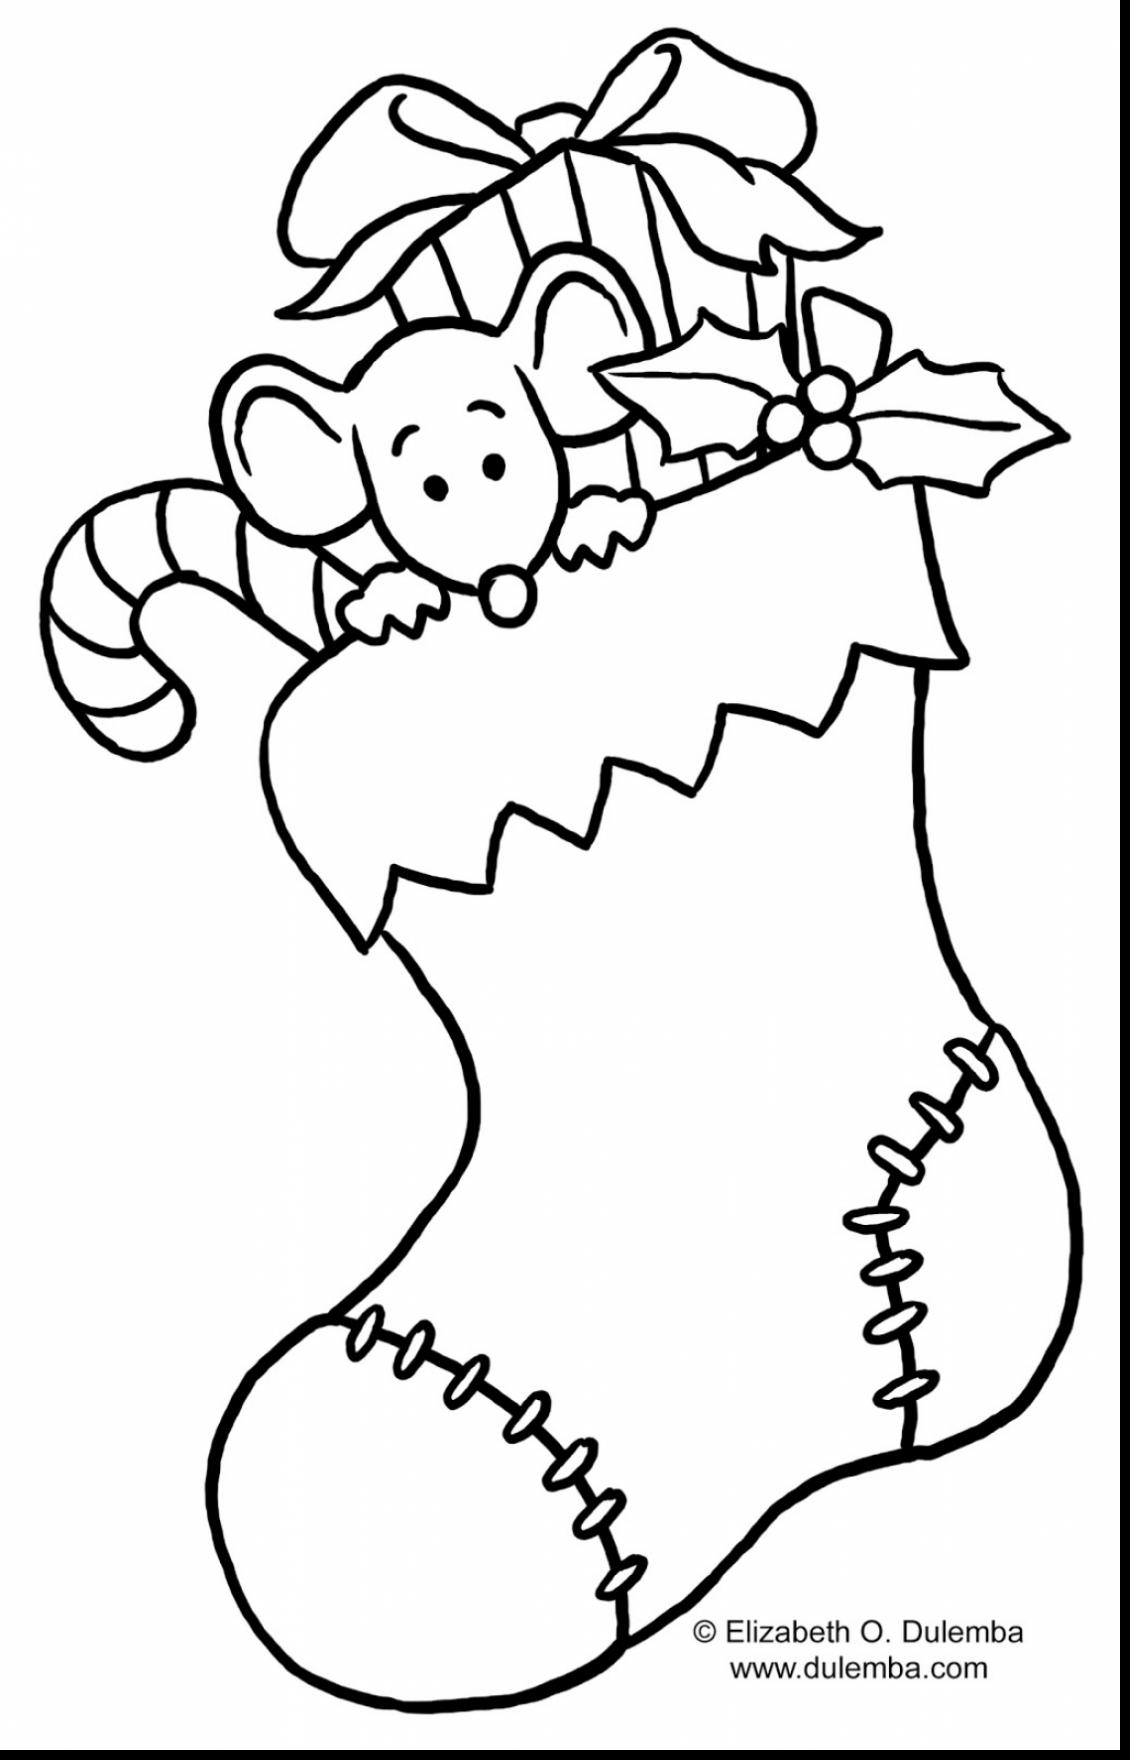 Christmas Coloring Pages You Can Print With Hello Kitty For Free Printable Diagnostic